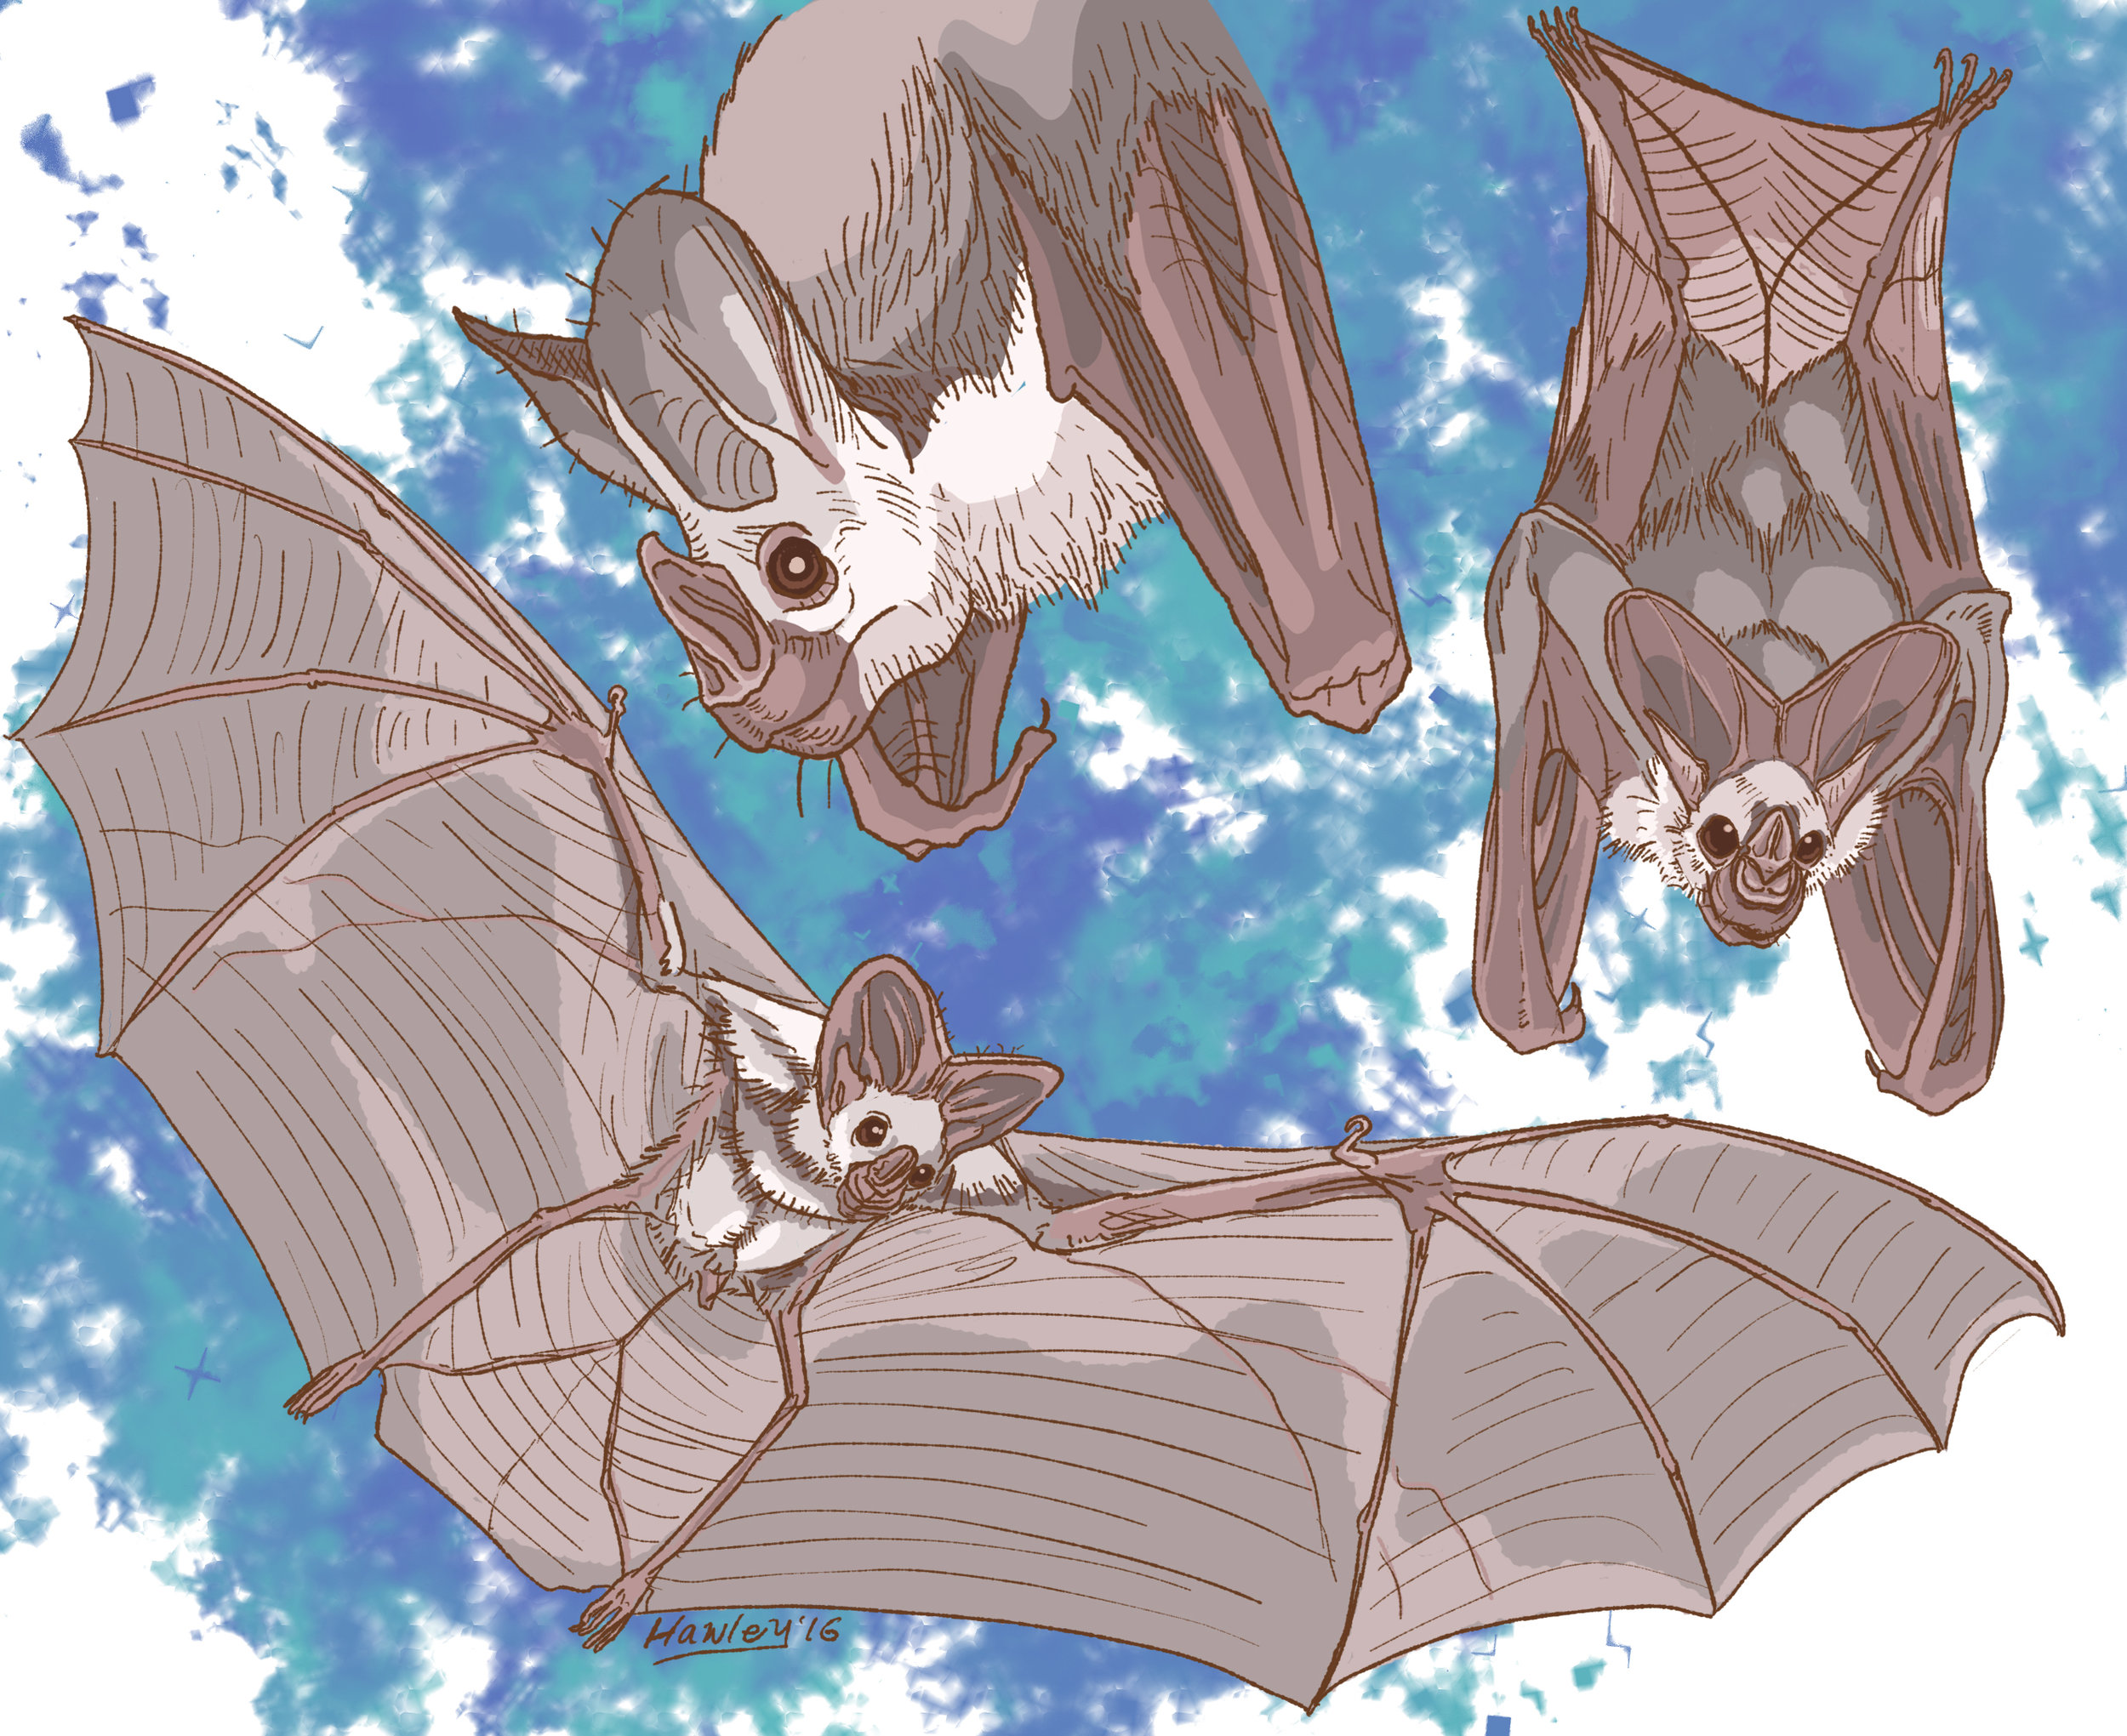 Ghost bat — roosting and taking flight